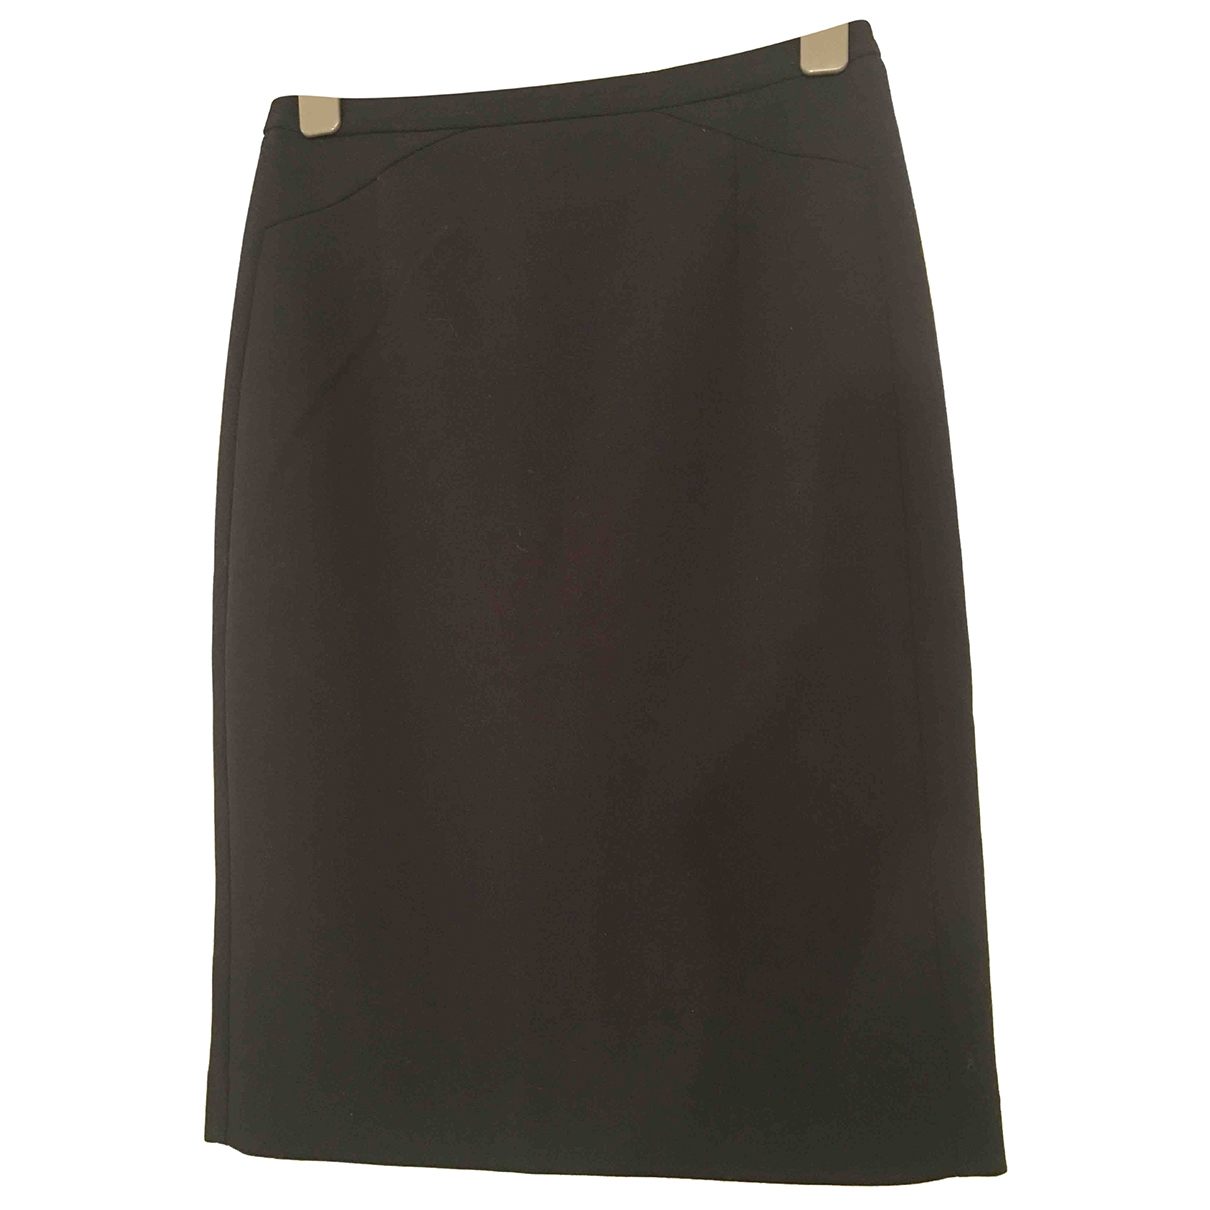 Lk Bennett \N Navy skirt for Women 10 UK